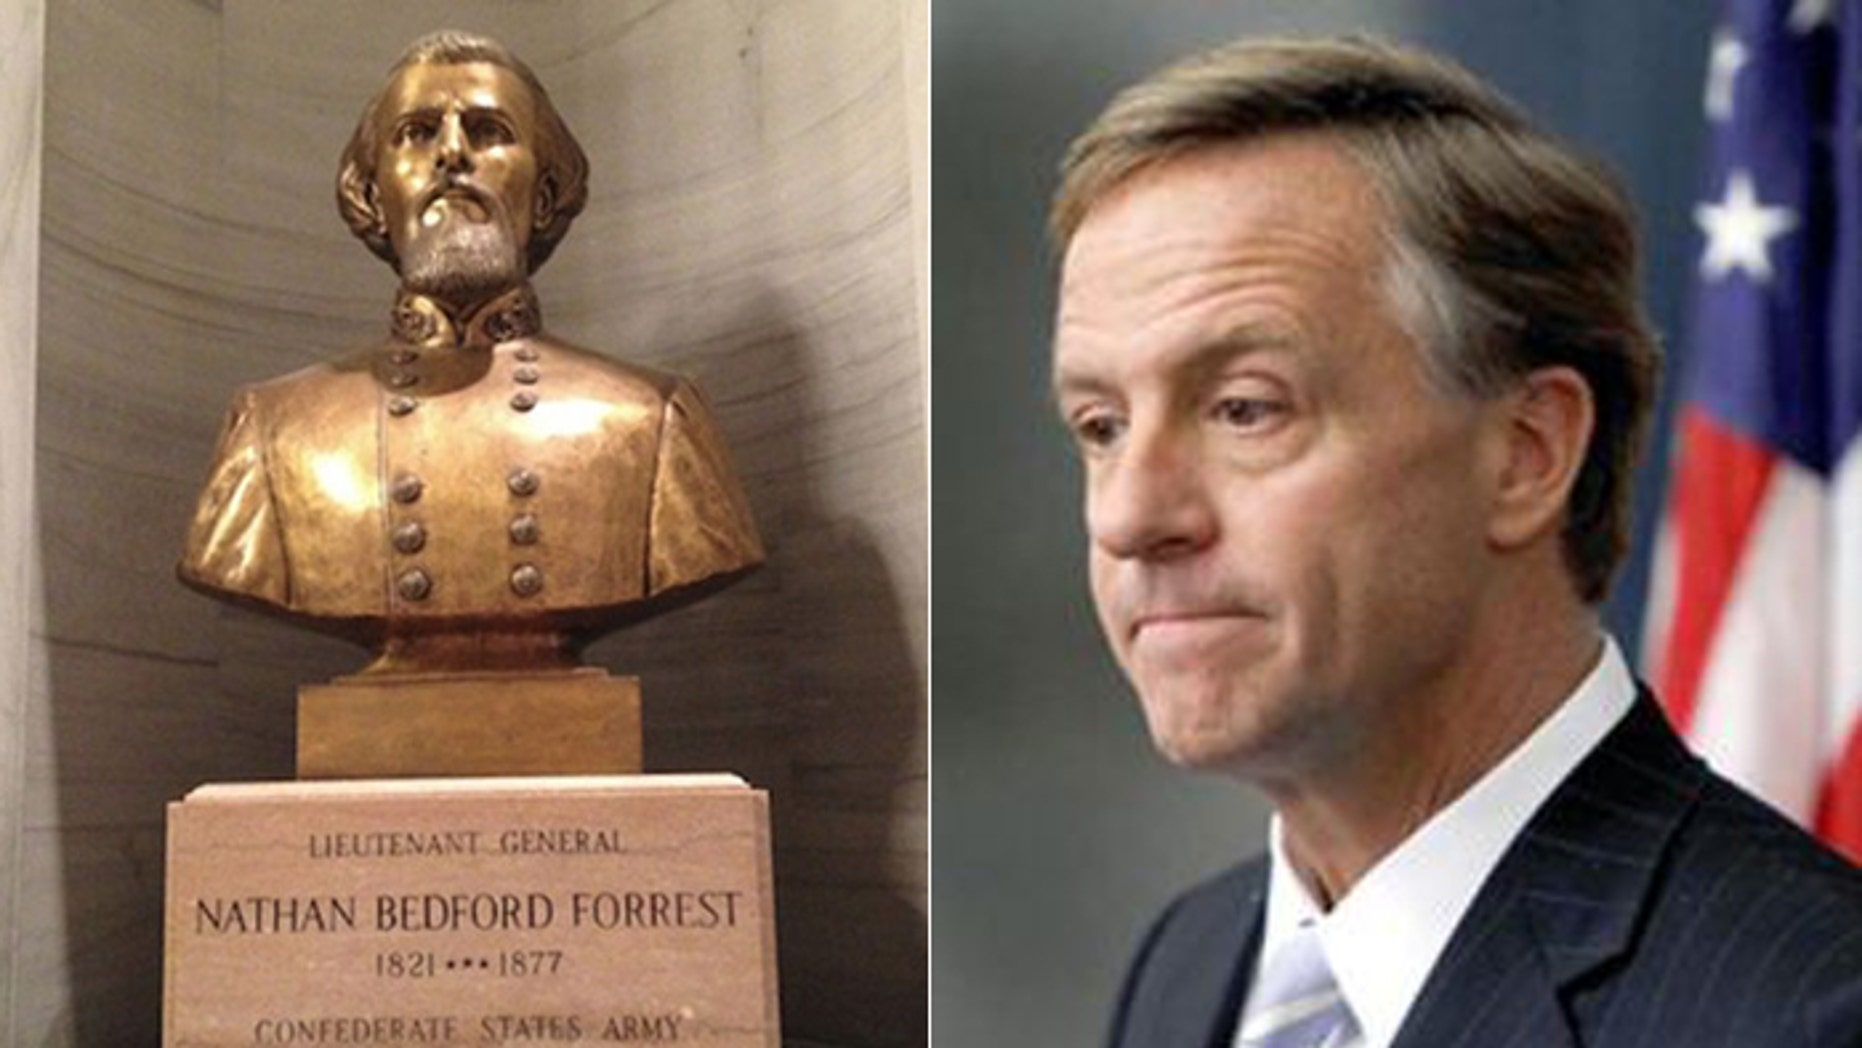 """The Tennessee governor had no choice but to proclaim Monday """"Nathan Bedford Forrest Day,"""" according to his staff. (AP)"""